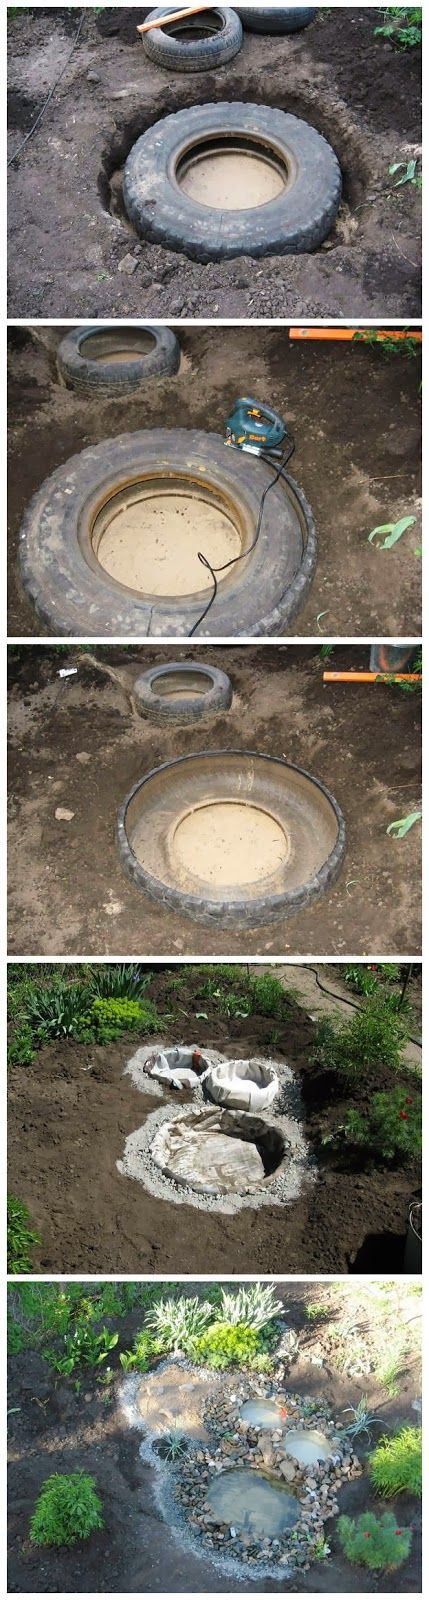 Turn your old car or truck tires into a backyard pond!*****Follow our unique garden themed boards at www.pinterest.com/earthwormtec *****Follow us on www.facebook.com/earthwormtec for great organic gardening tips #DIY #garden #repurpose